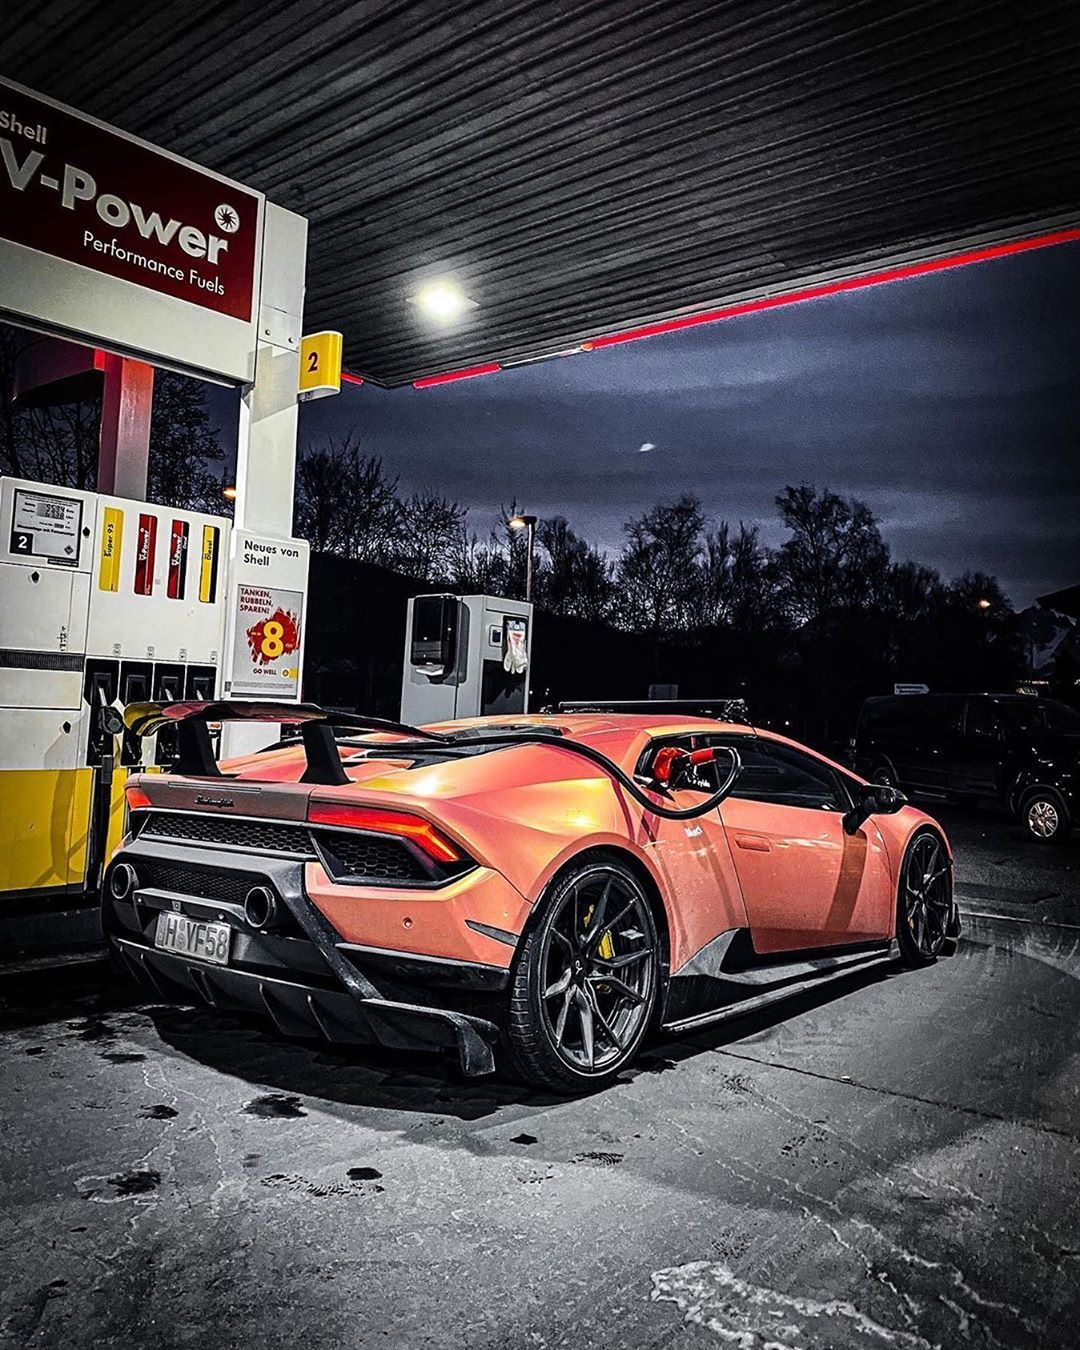 We Are An Online Webshop Specializing In Vehicle Related Products Take A Look Around Our Account Or Visit Our Website Cadille In 2020 Luxury Cars Super Cars Bmw Car